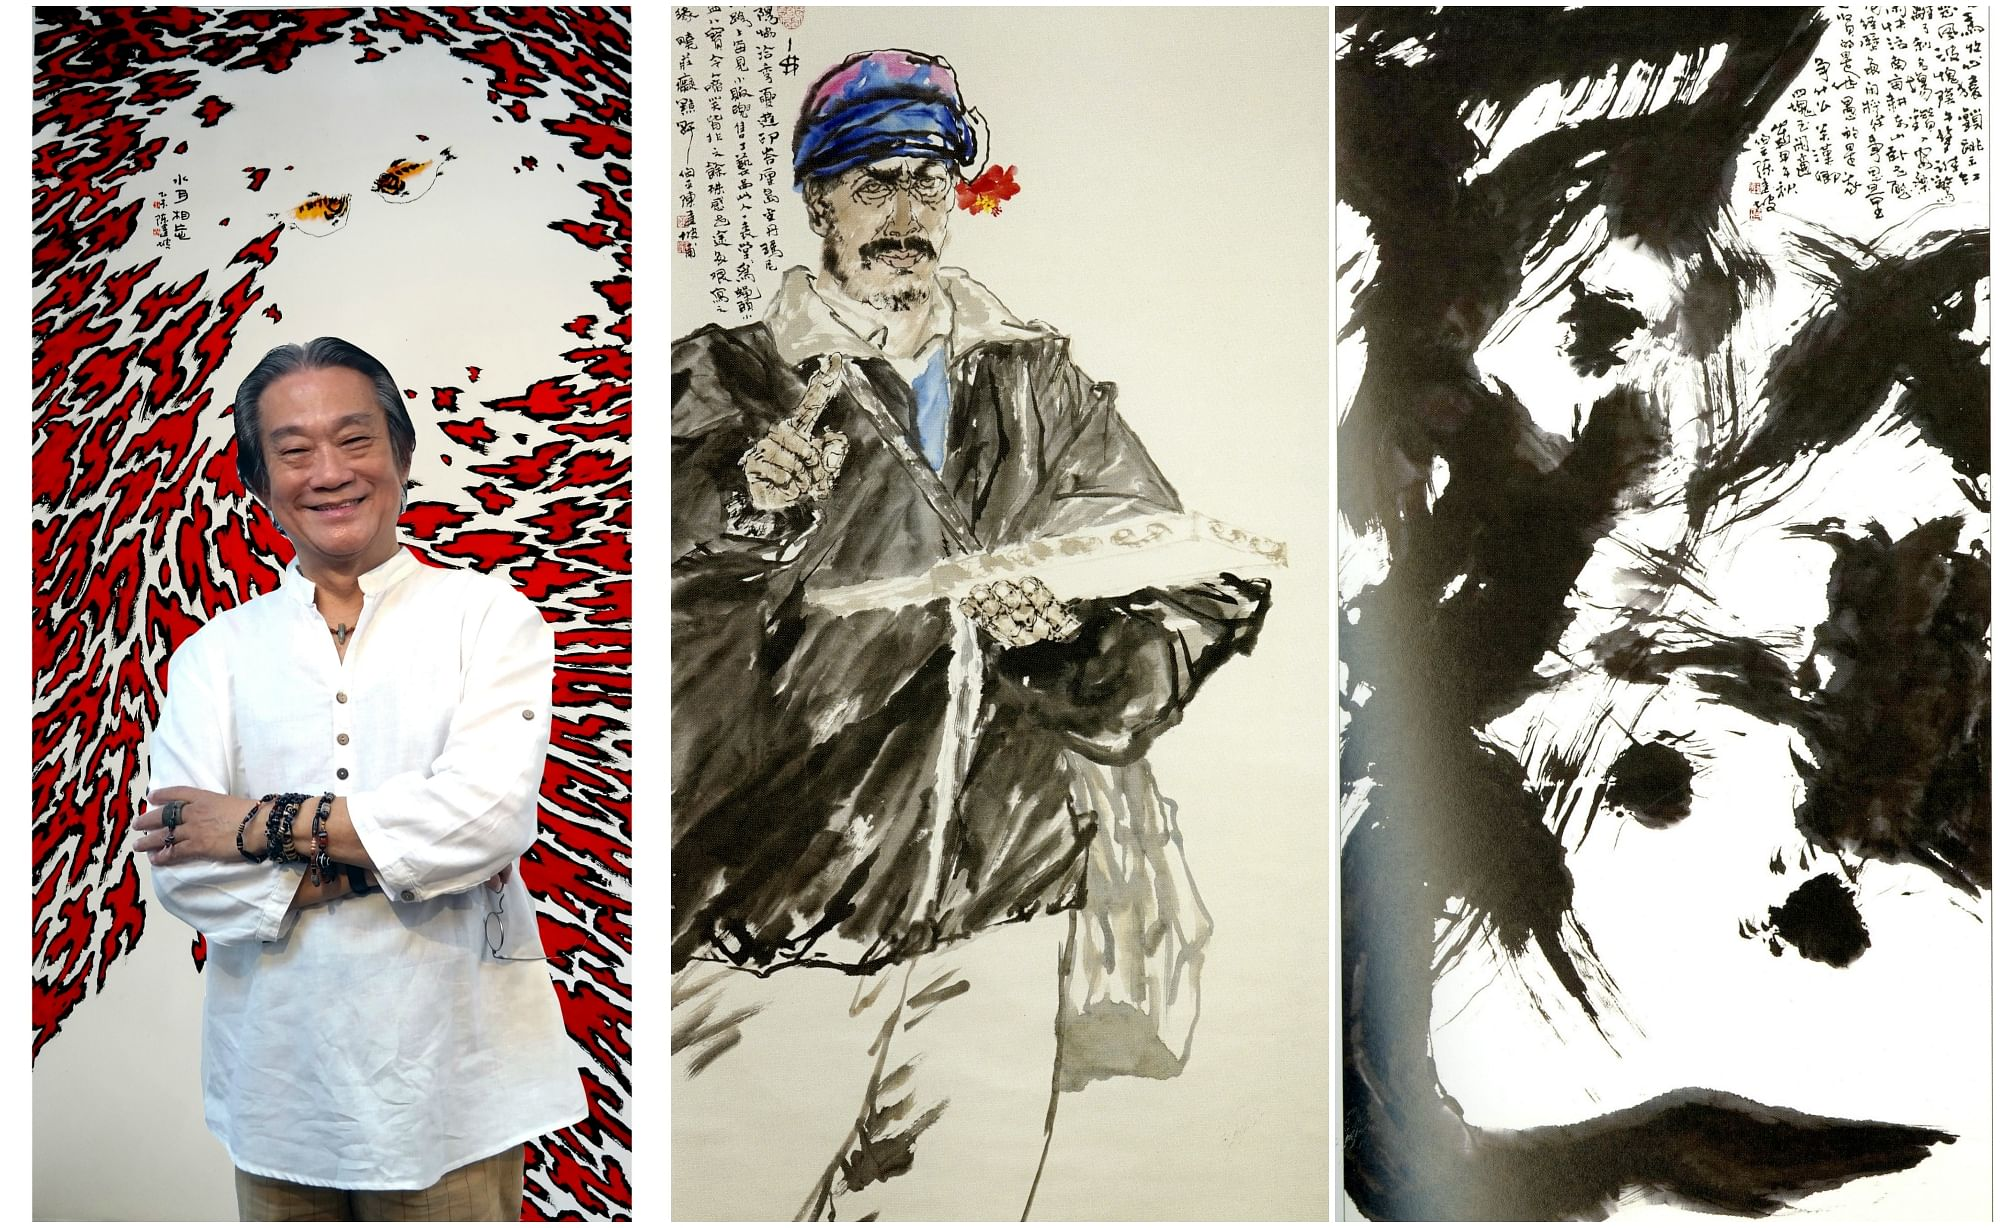 The latest solo exhibition of Tan Kian Por (left) features artworks such as Shui Yue Xiang Wang (background) and a portrait of a Balinese man (top) as well as abstract Chinese calligraphy (above).